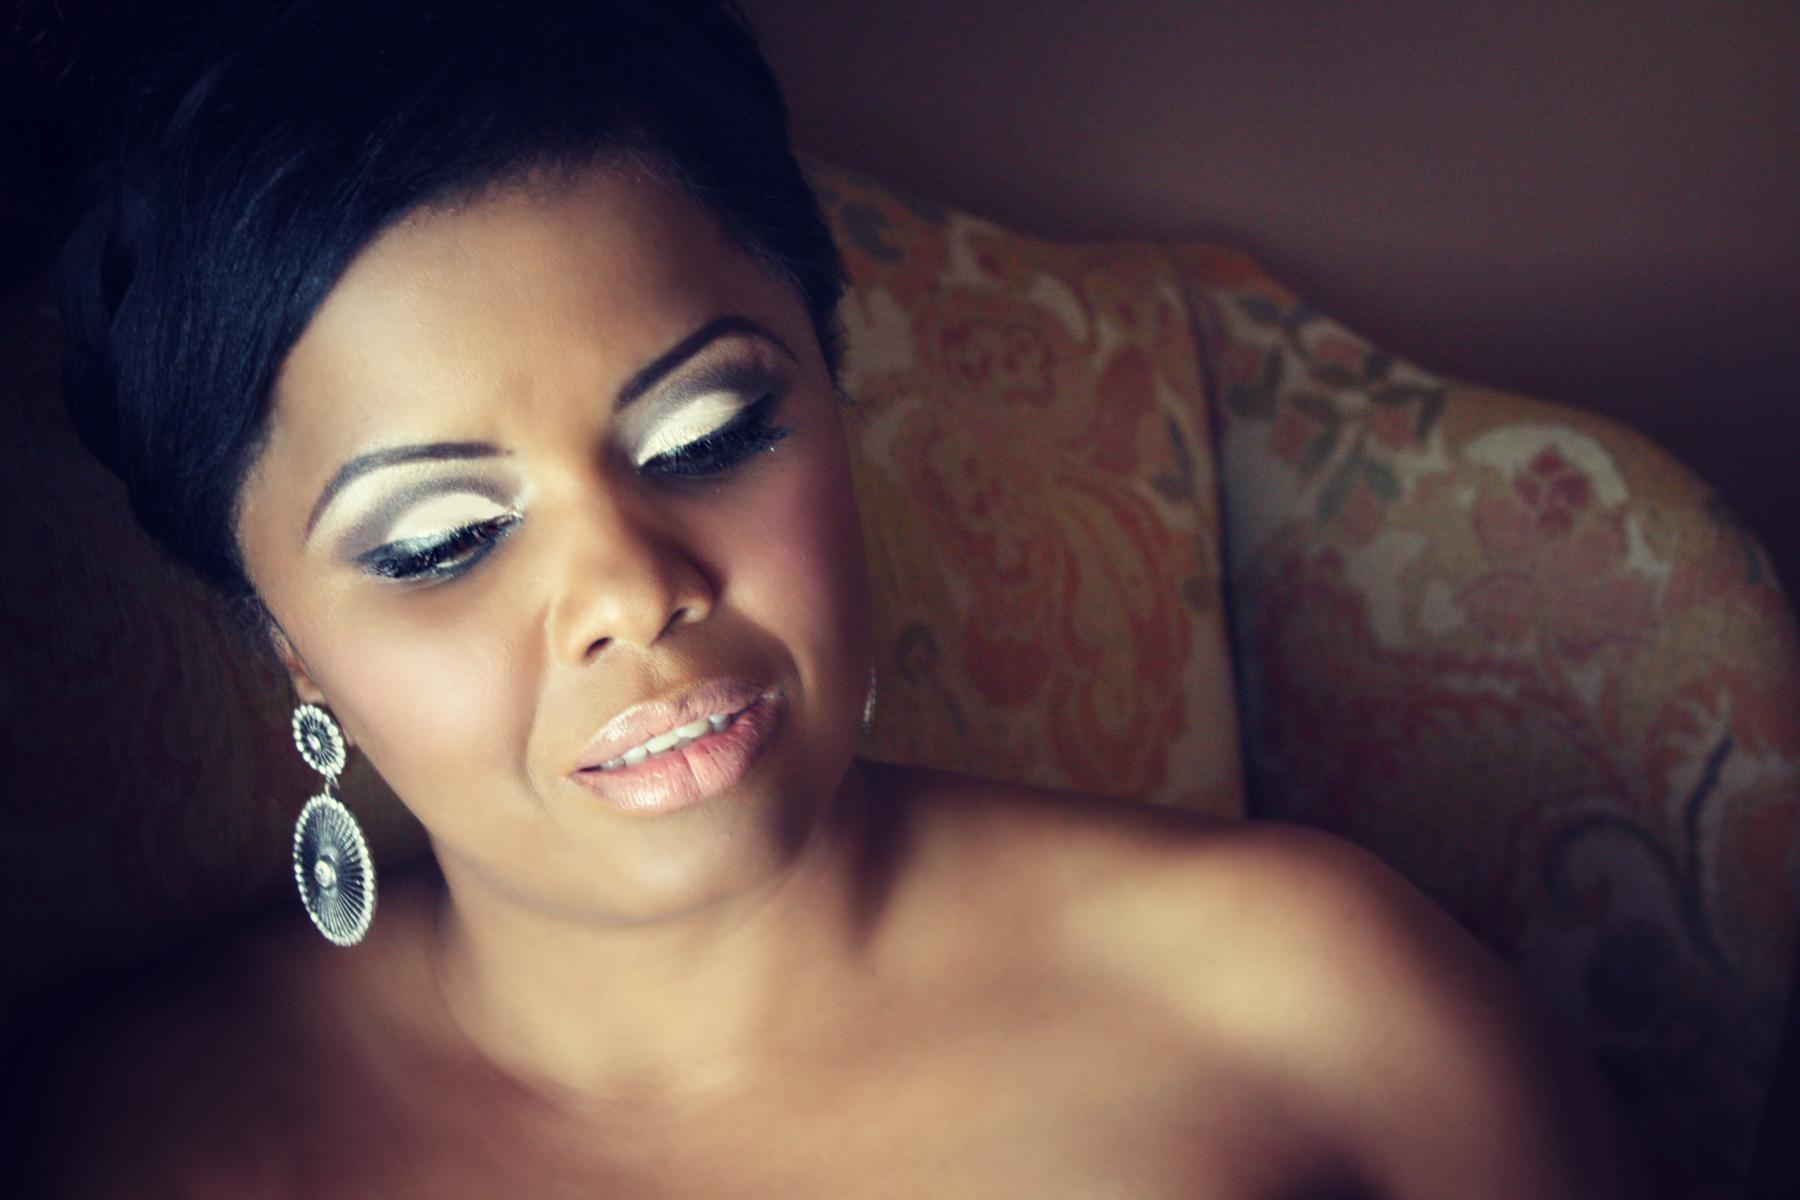 Makeup & Photography by Nicole Palermo/Bridal Hair by Mindy Whalen